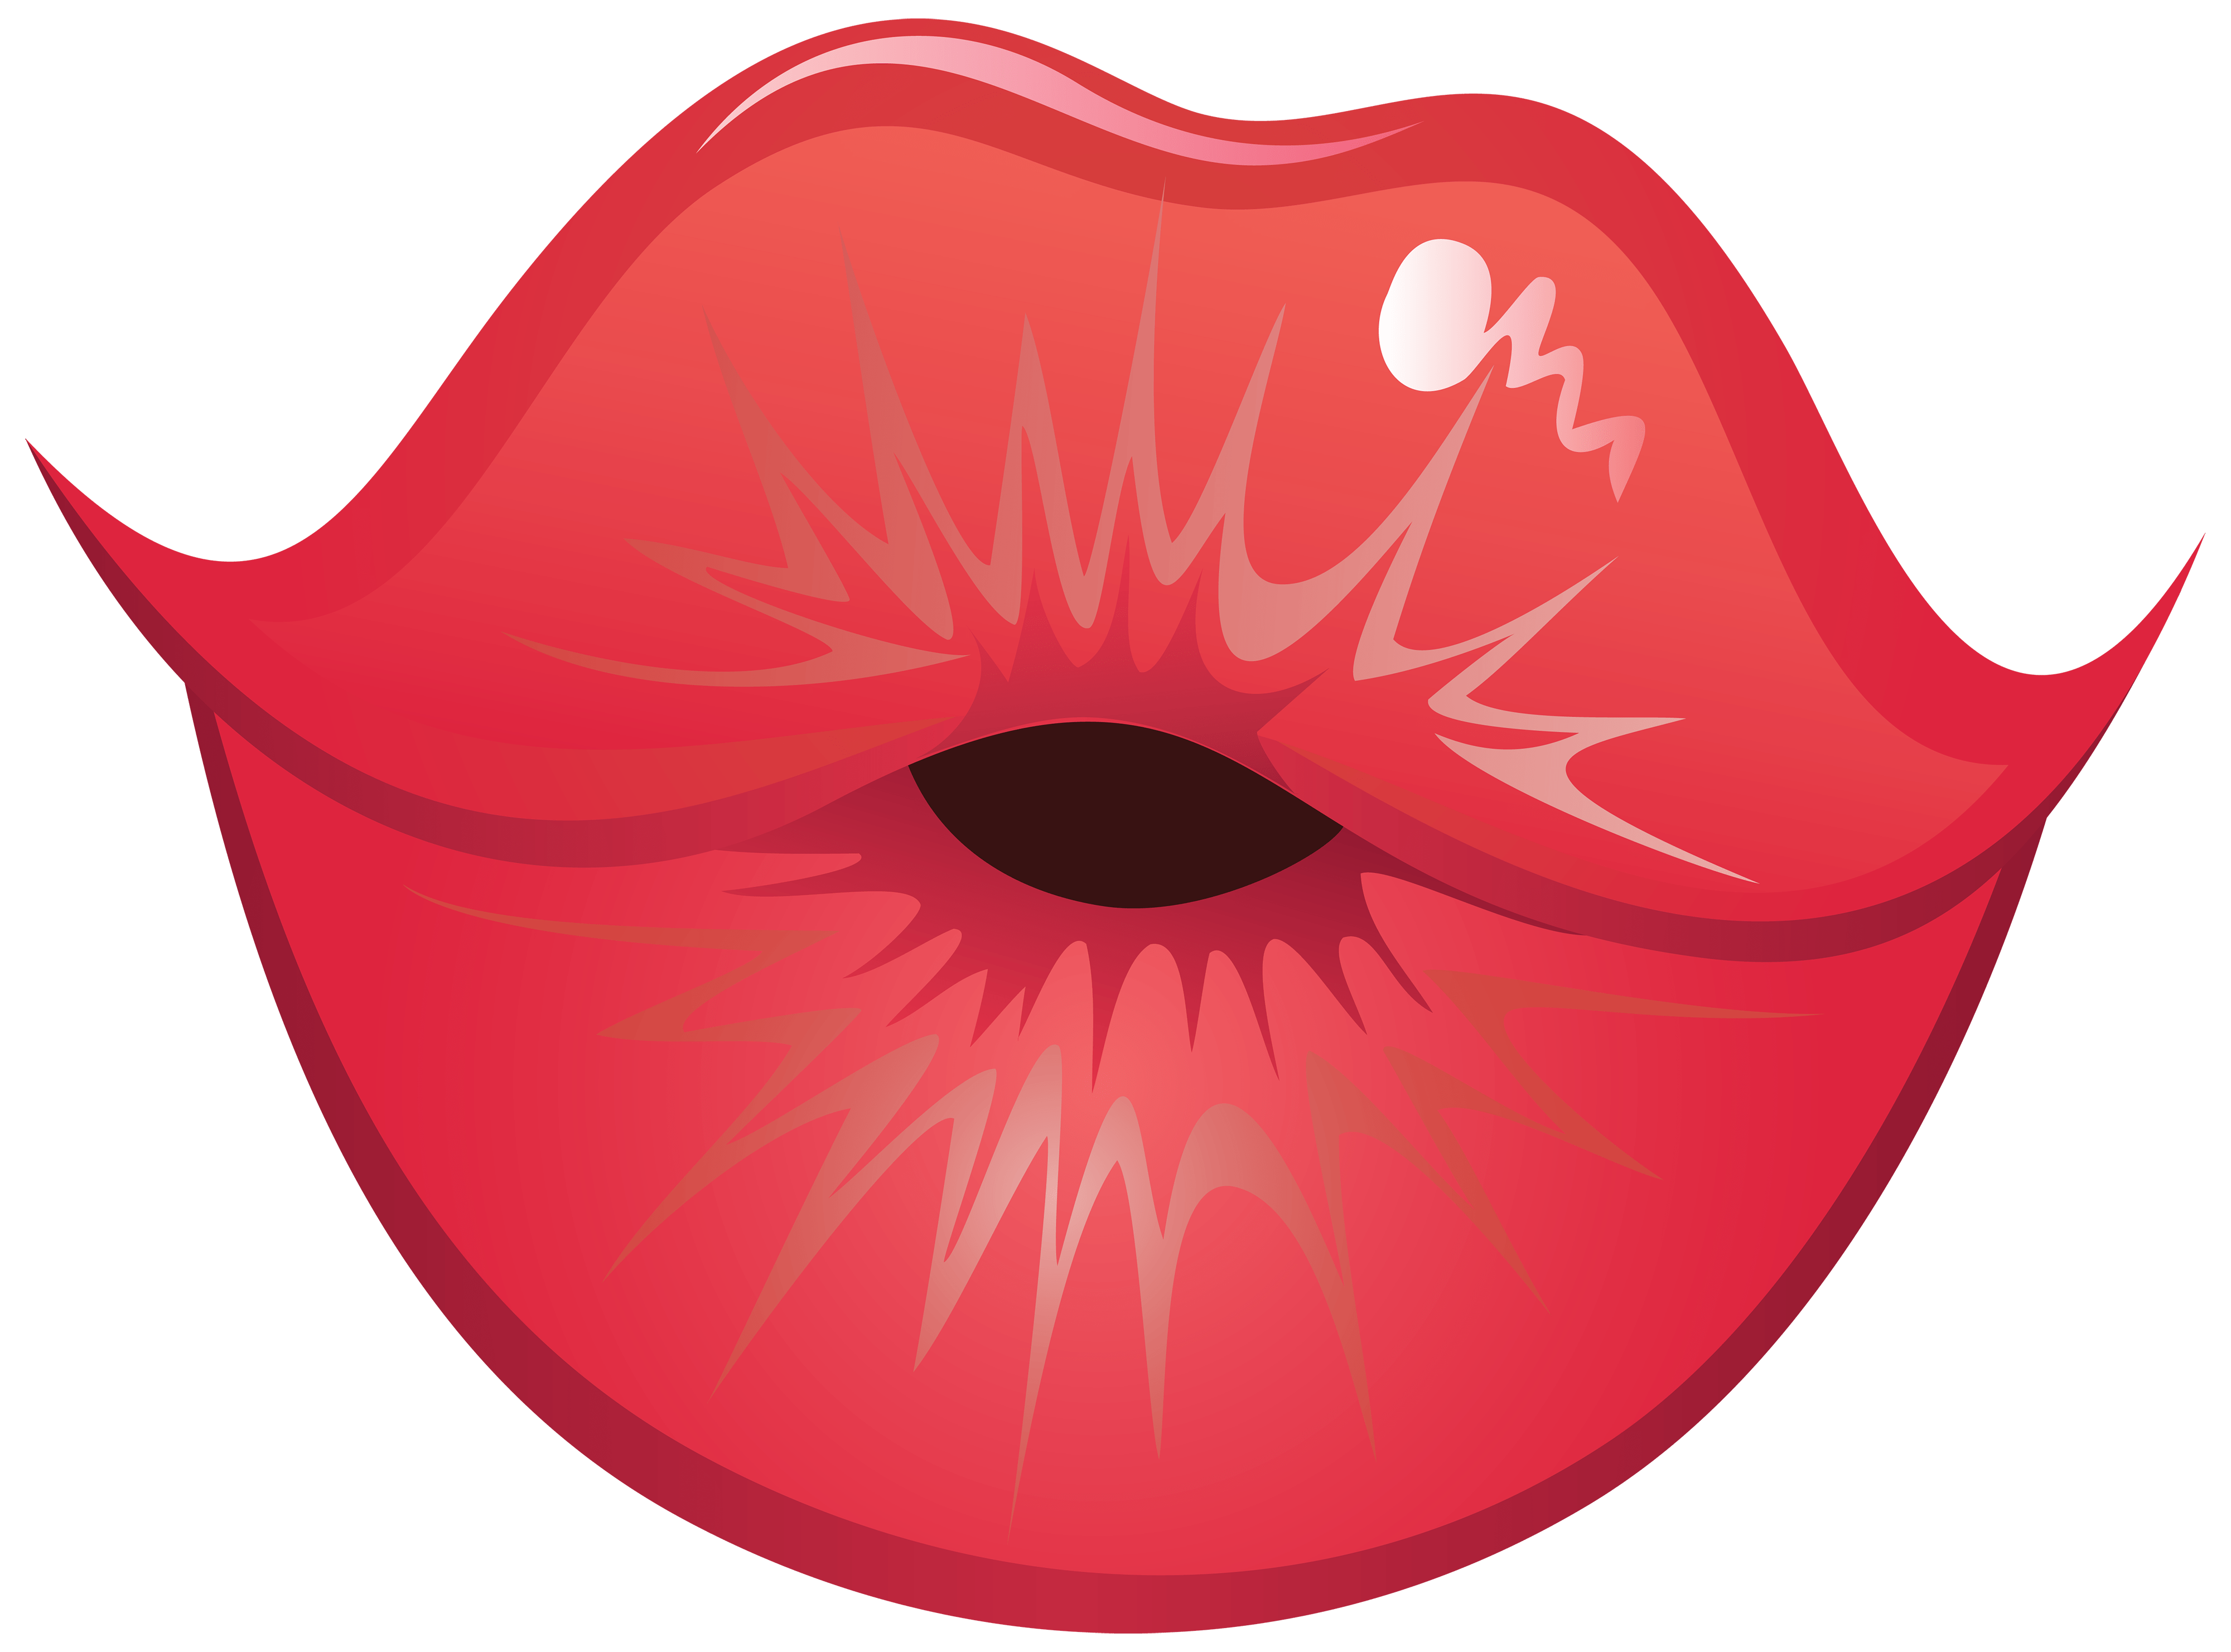 Lip clipart kissey. List of synonyms and